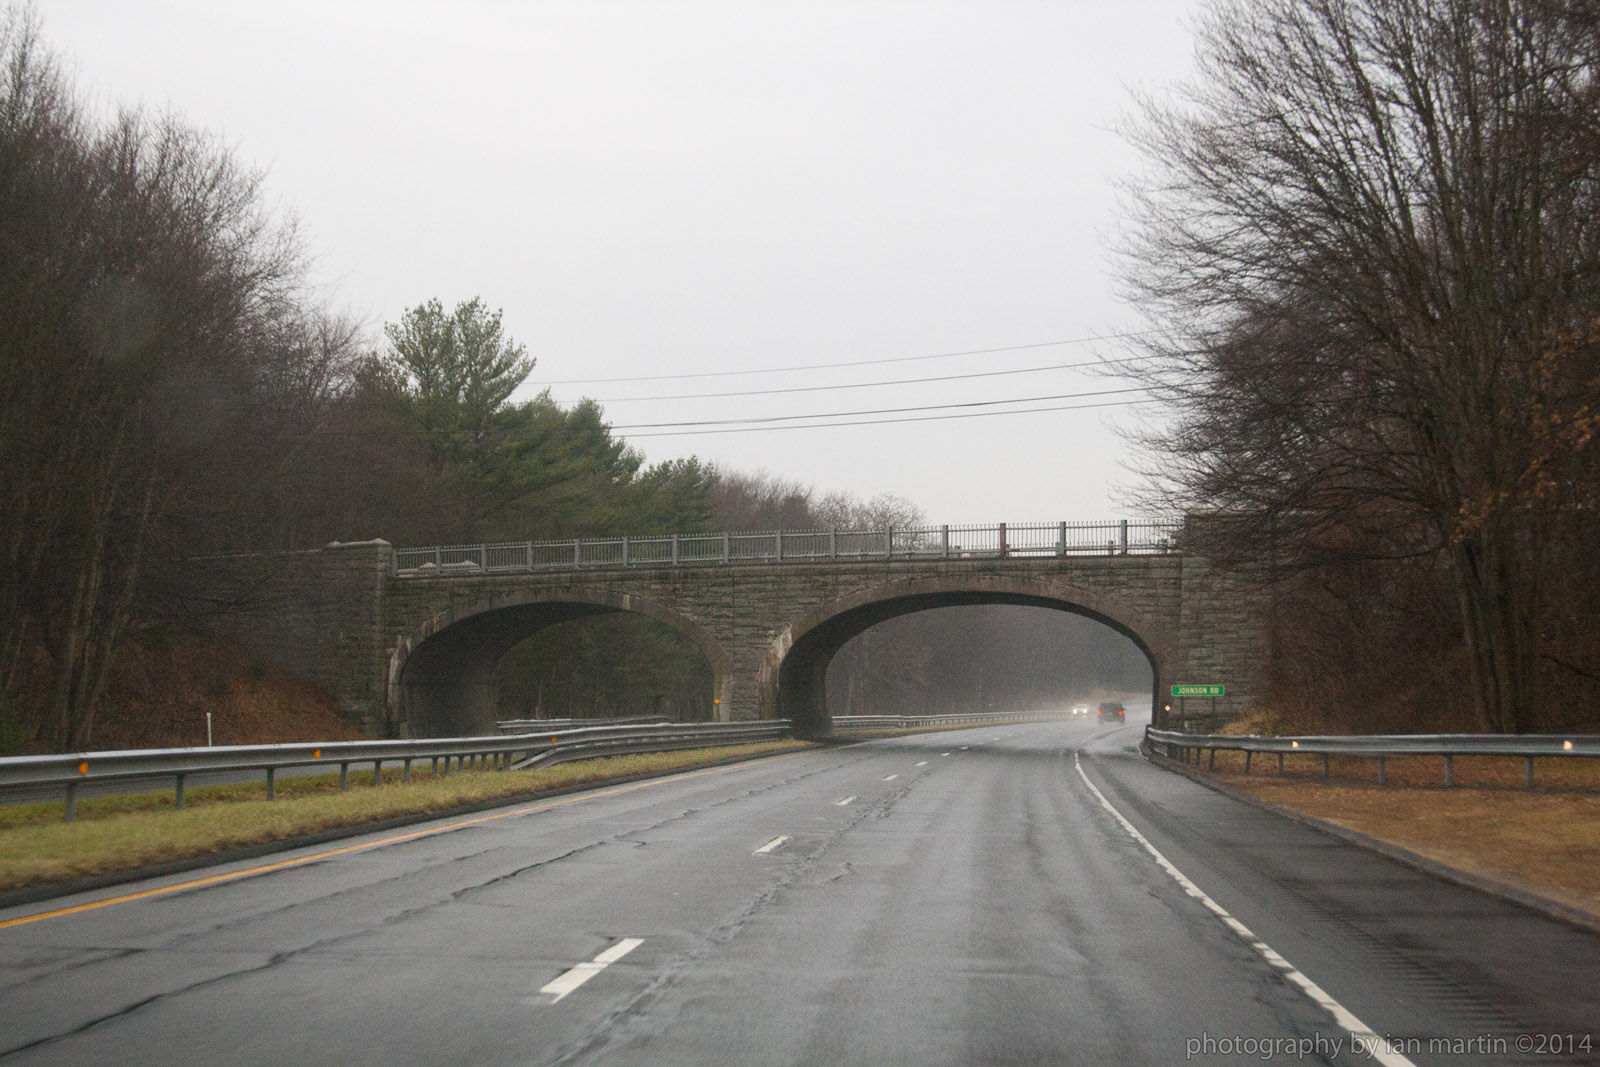 Bridgehuntercom  Johnson Road  Wilbur Cross Parkway Bridge